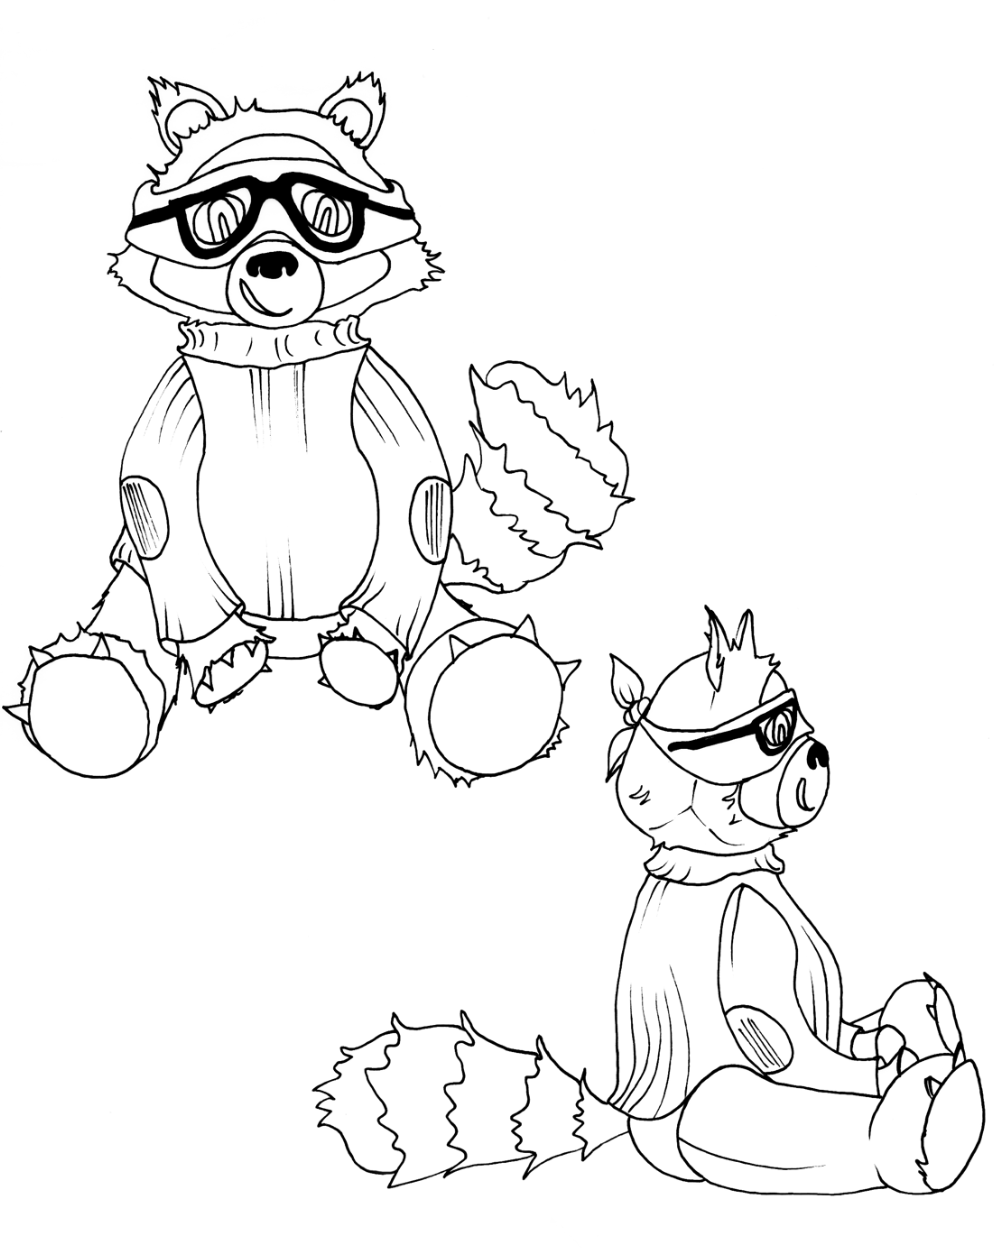 Coloring pages raccoon - Free Printable Coloring Pages Of Raccoon